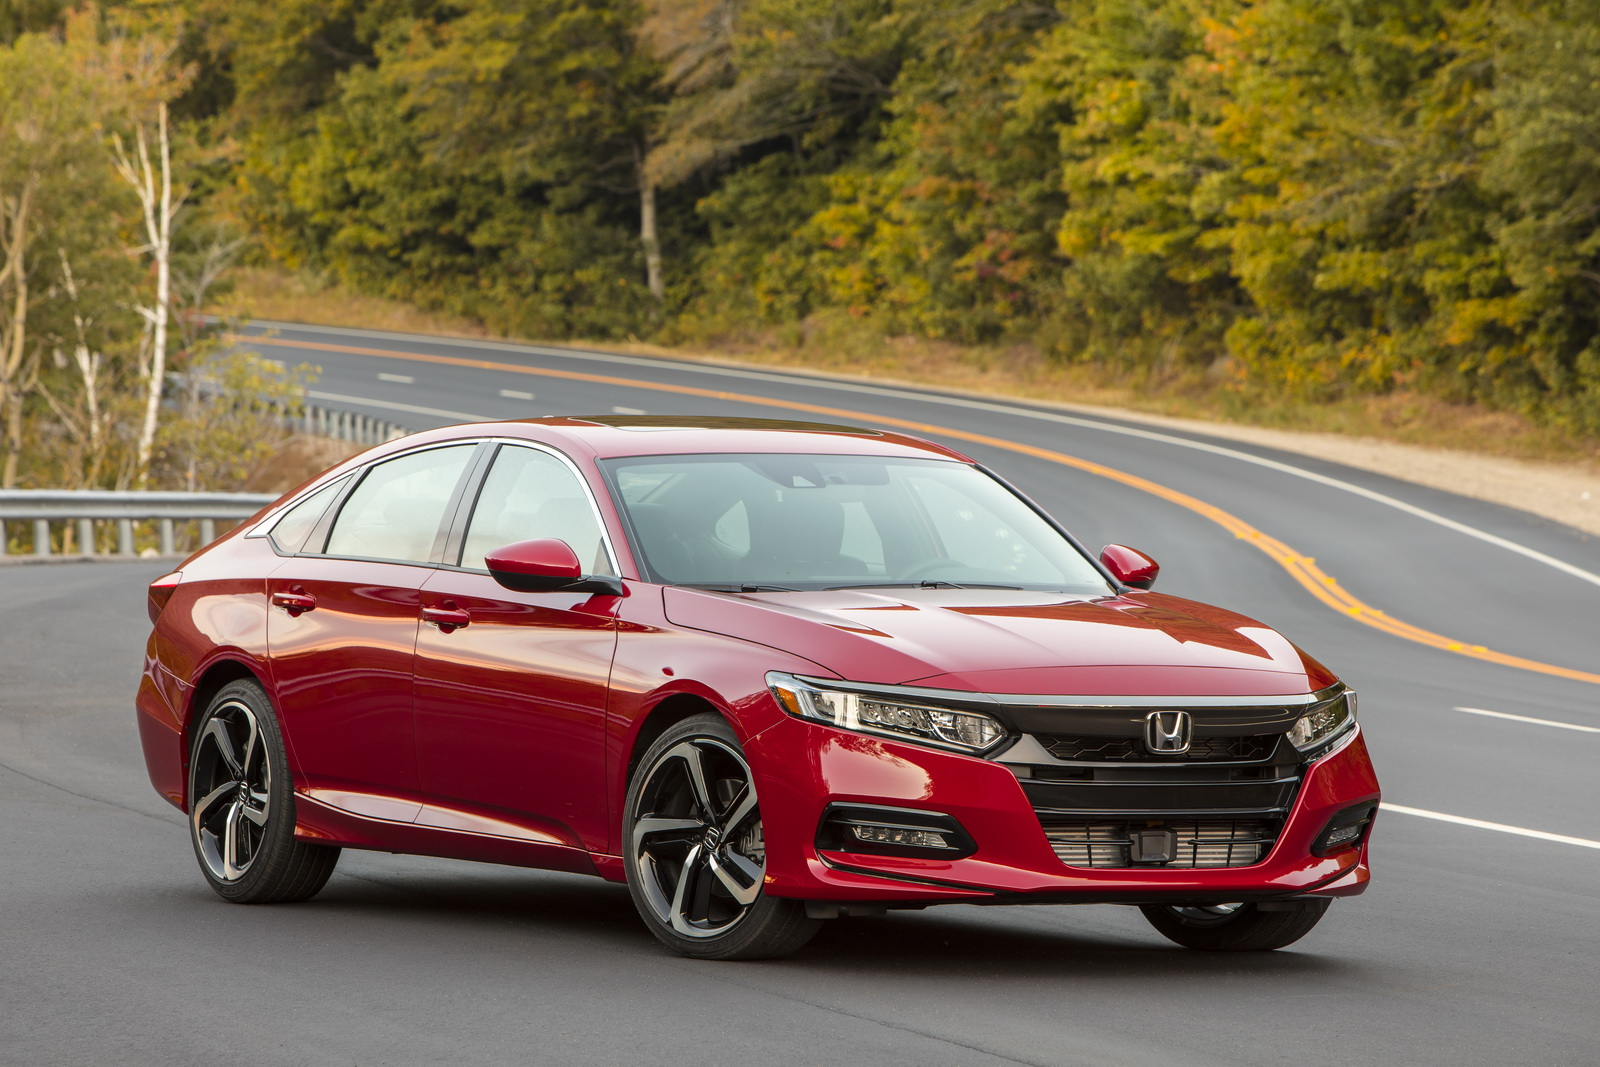 2018 Honda Accord - US CAR of the YEAR